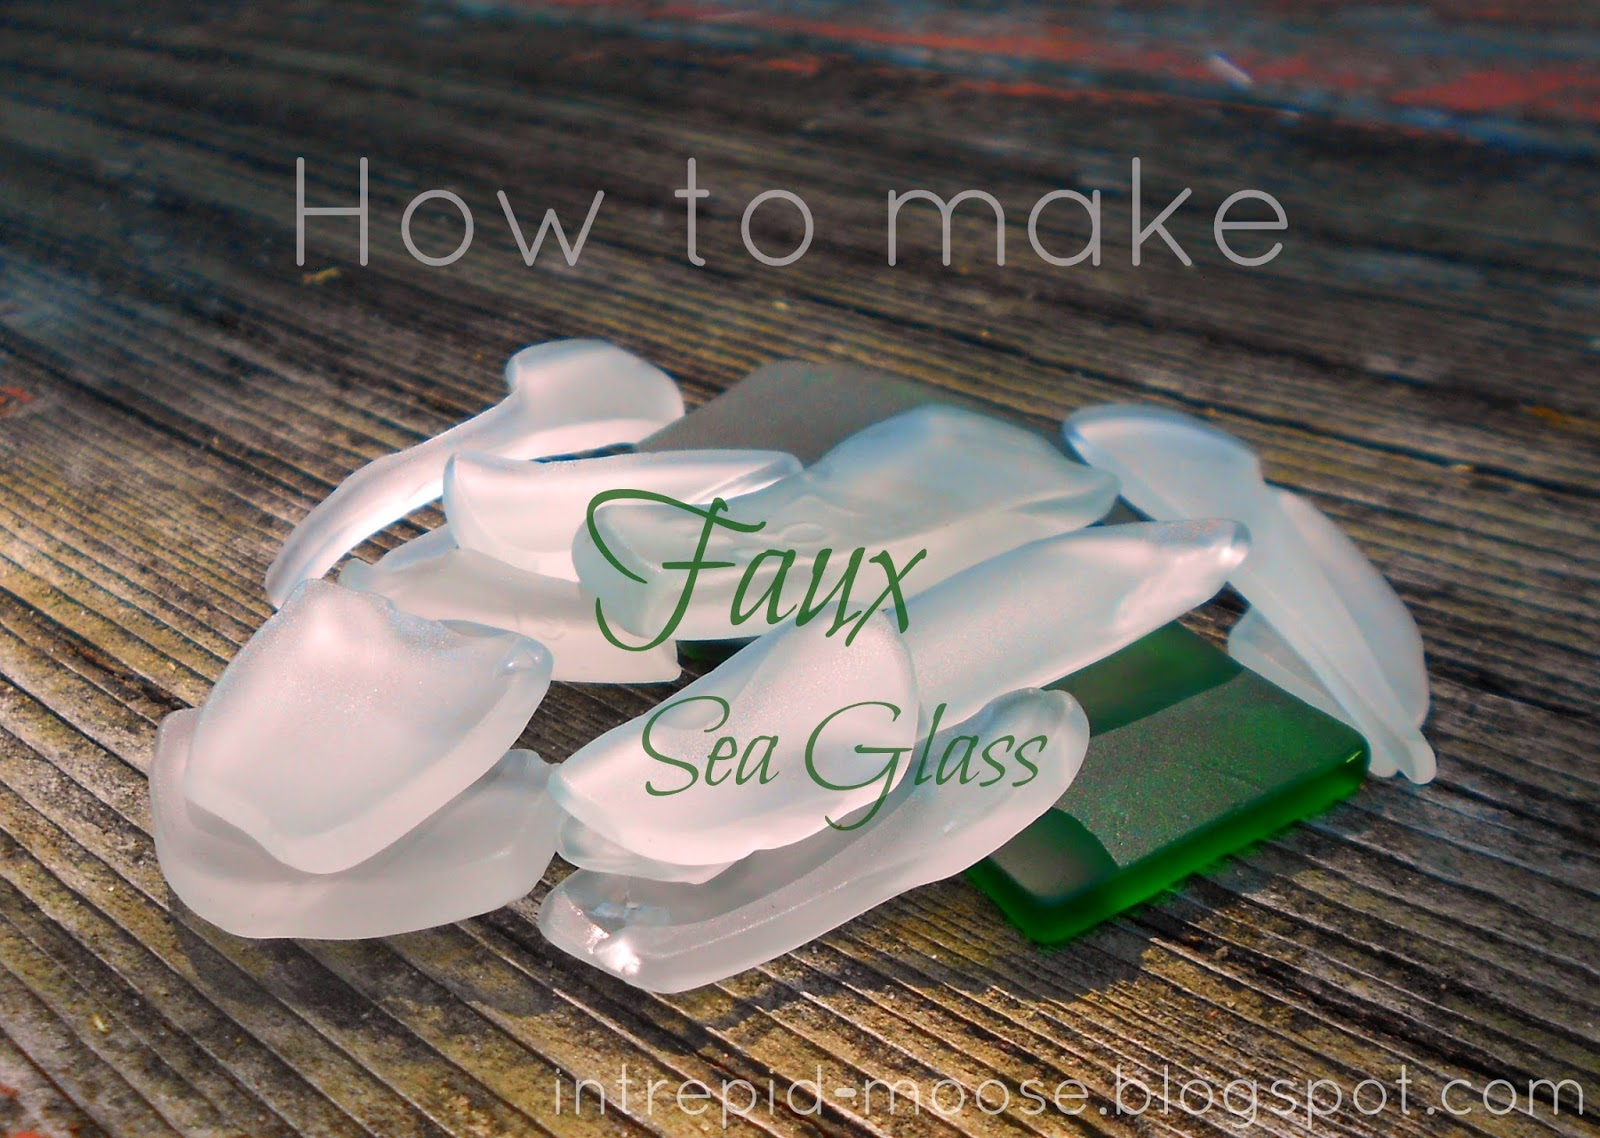 how to make faux sea glass - How To Make Sea Glass